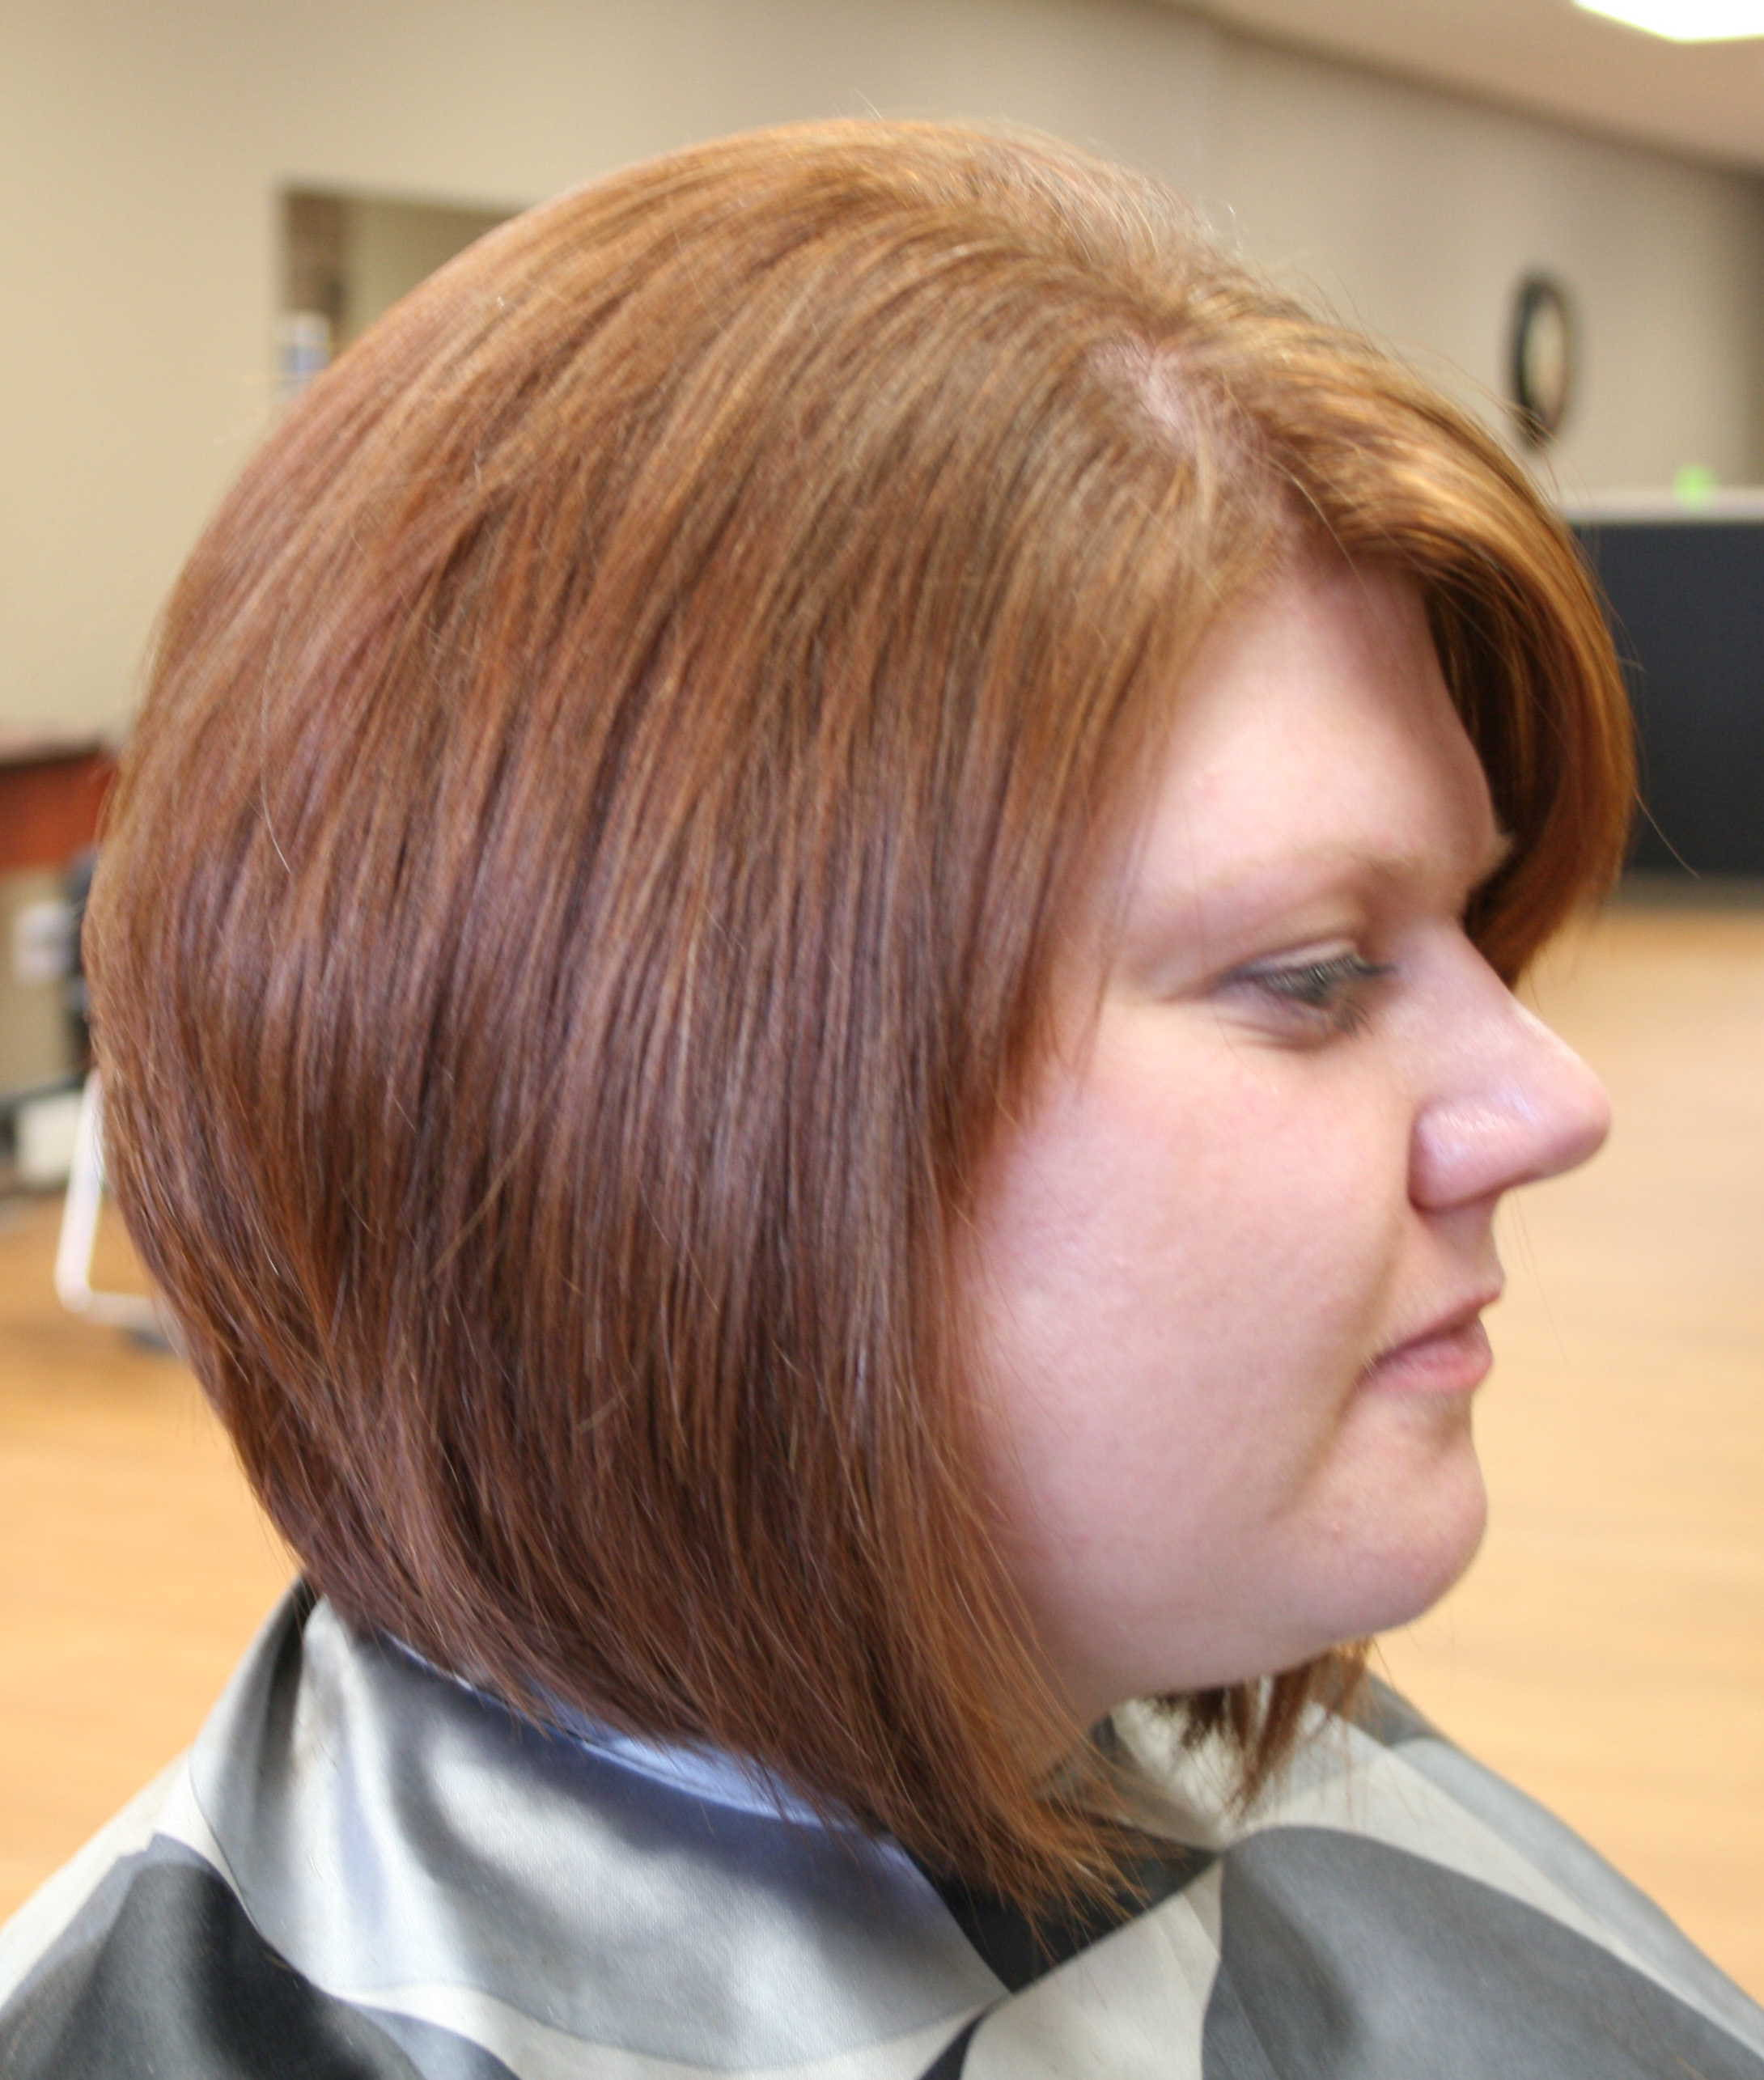 Haircuts bobs for round faces